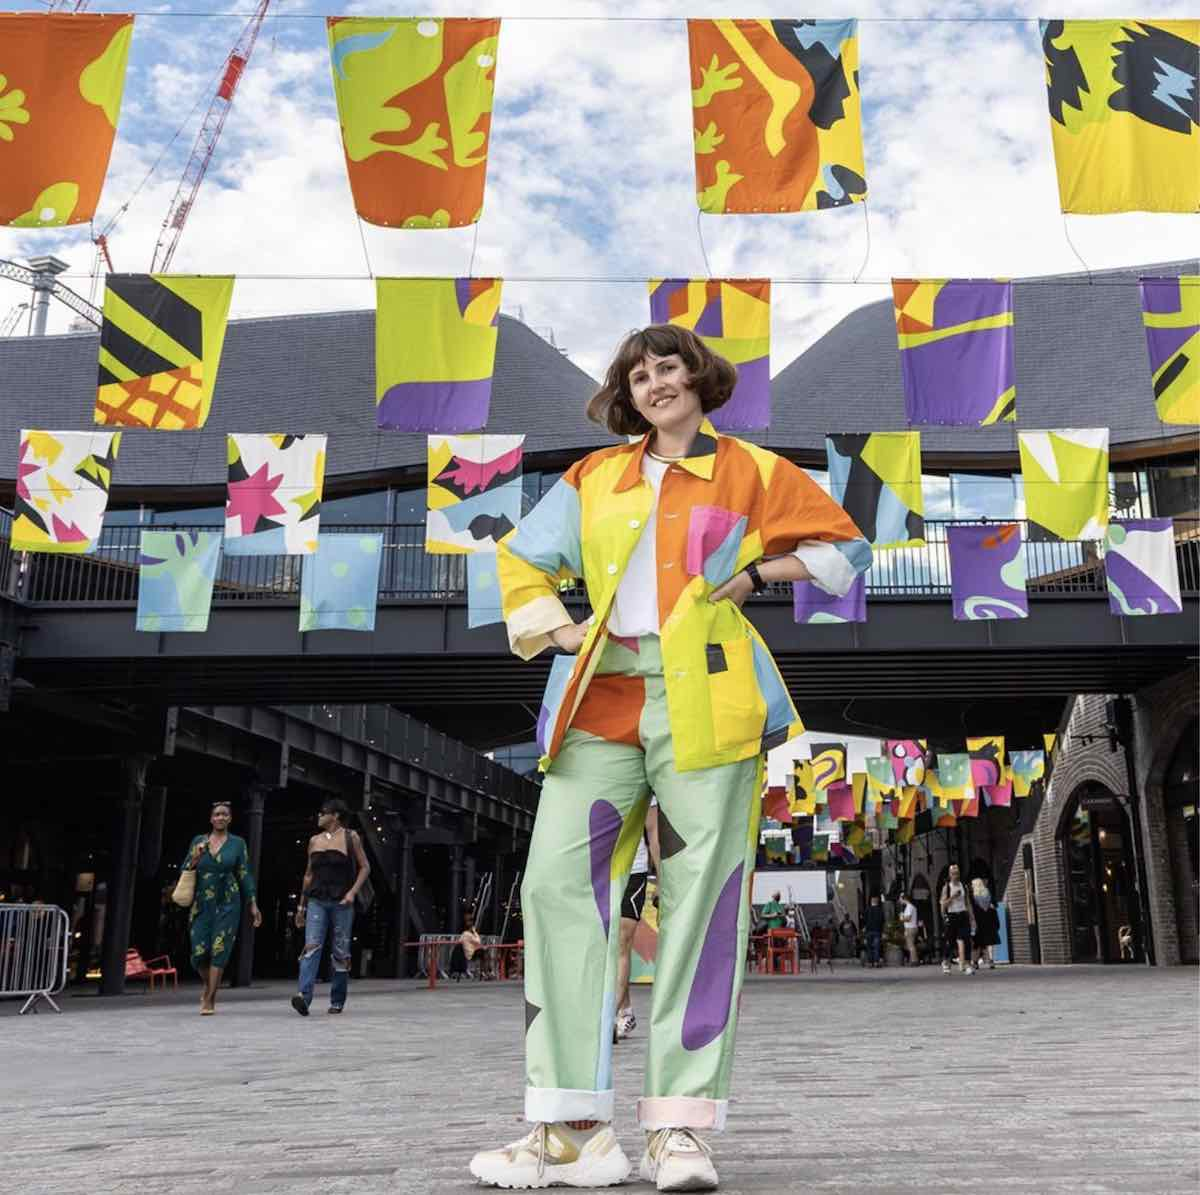 PATTERN PORTRAITS by Lauren Godfrey @ Coal Drops Yard - via @laurengodders. IG, photo by John Sturrock.